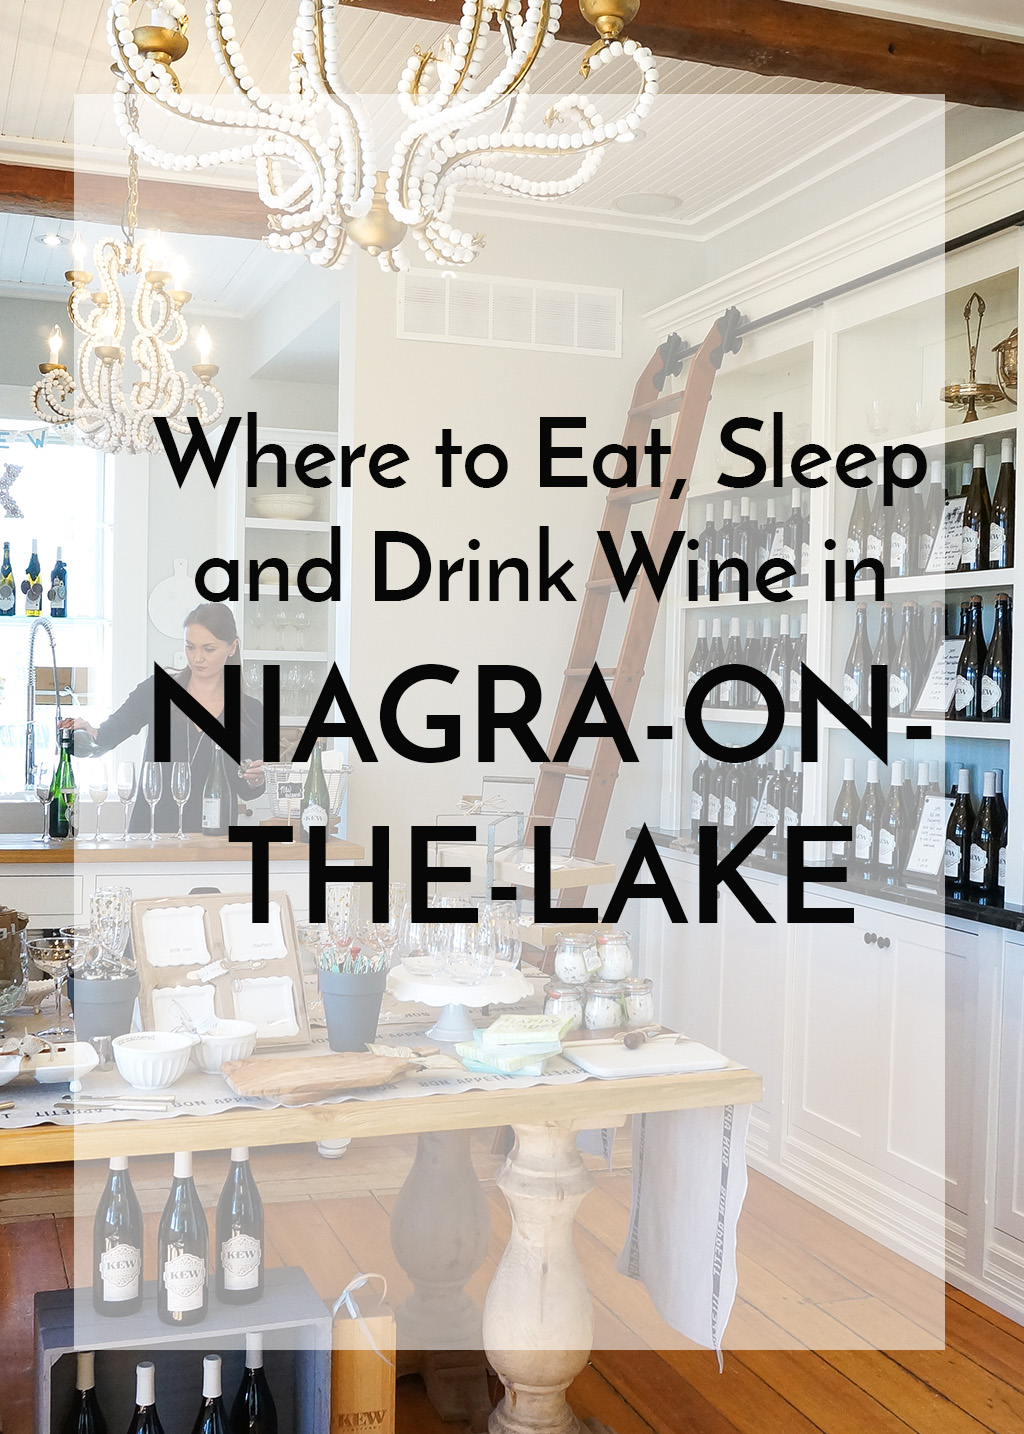 Where to Eat, Sleep and Drink Wine in Niagara-on-the-Lake